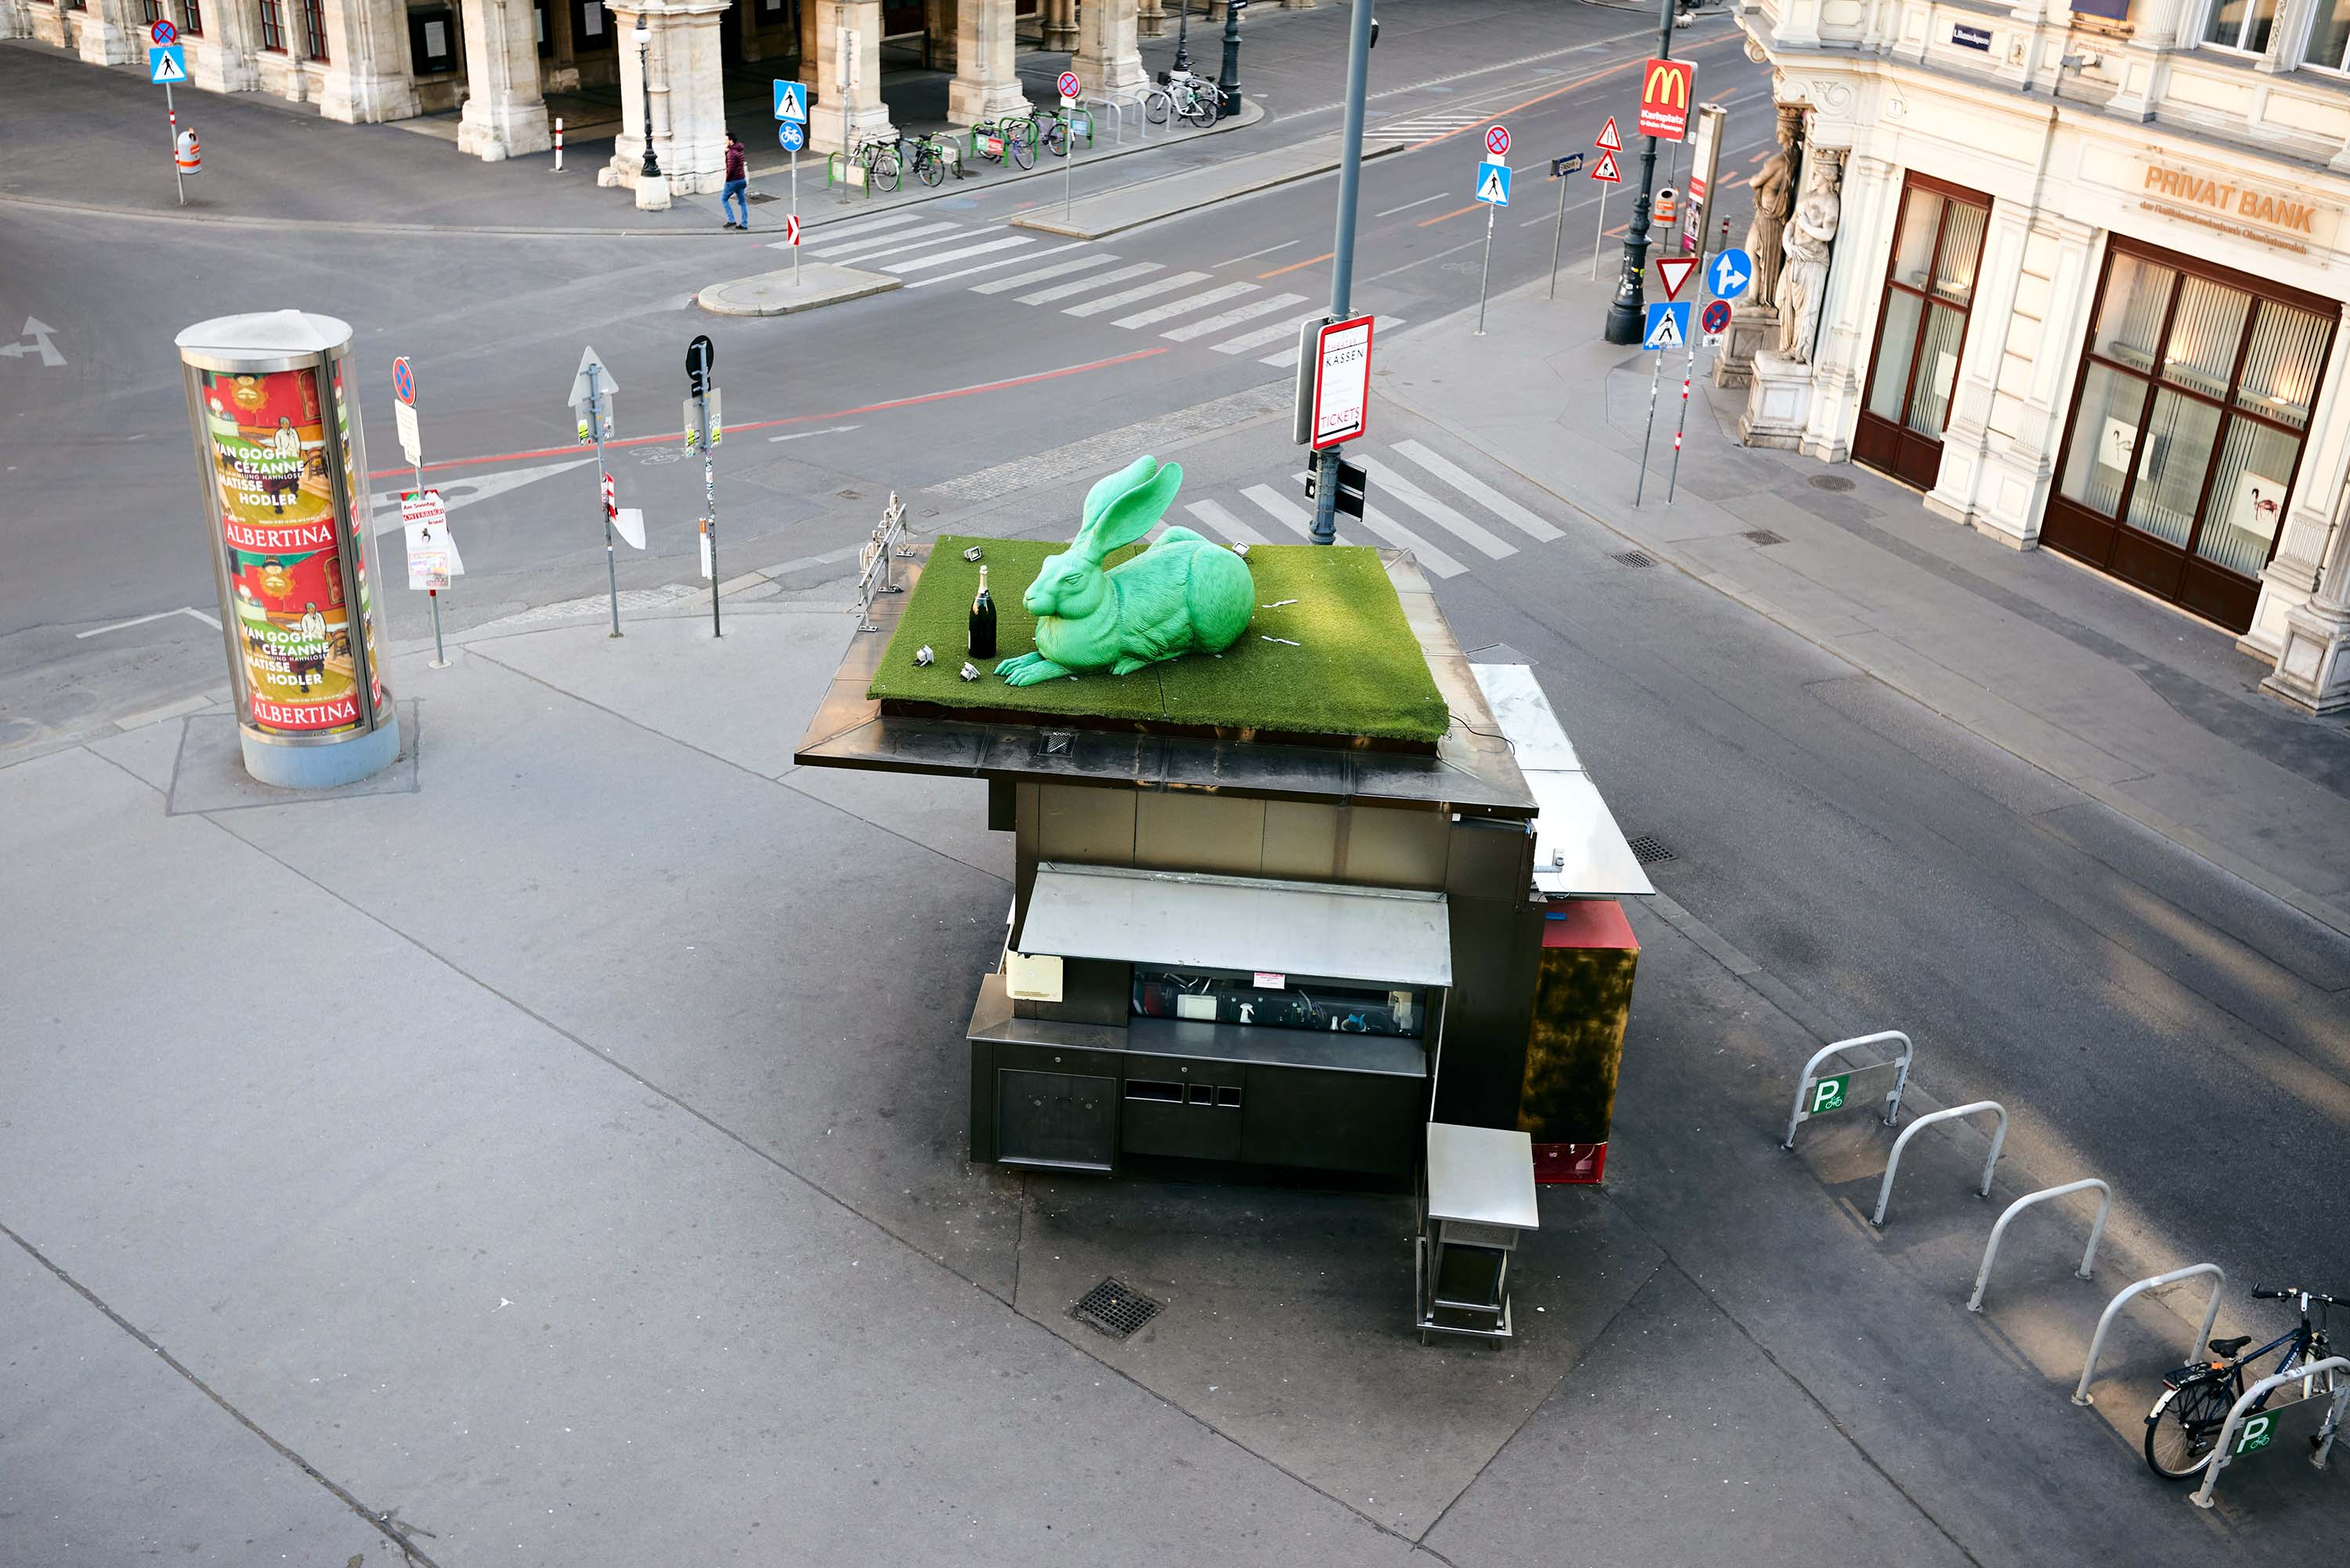 A closed street food stall is pictured in Vienna, Austria on April 2.